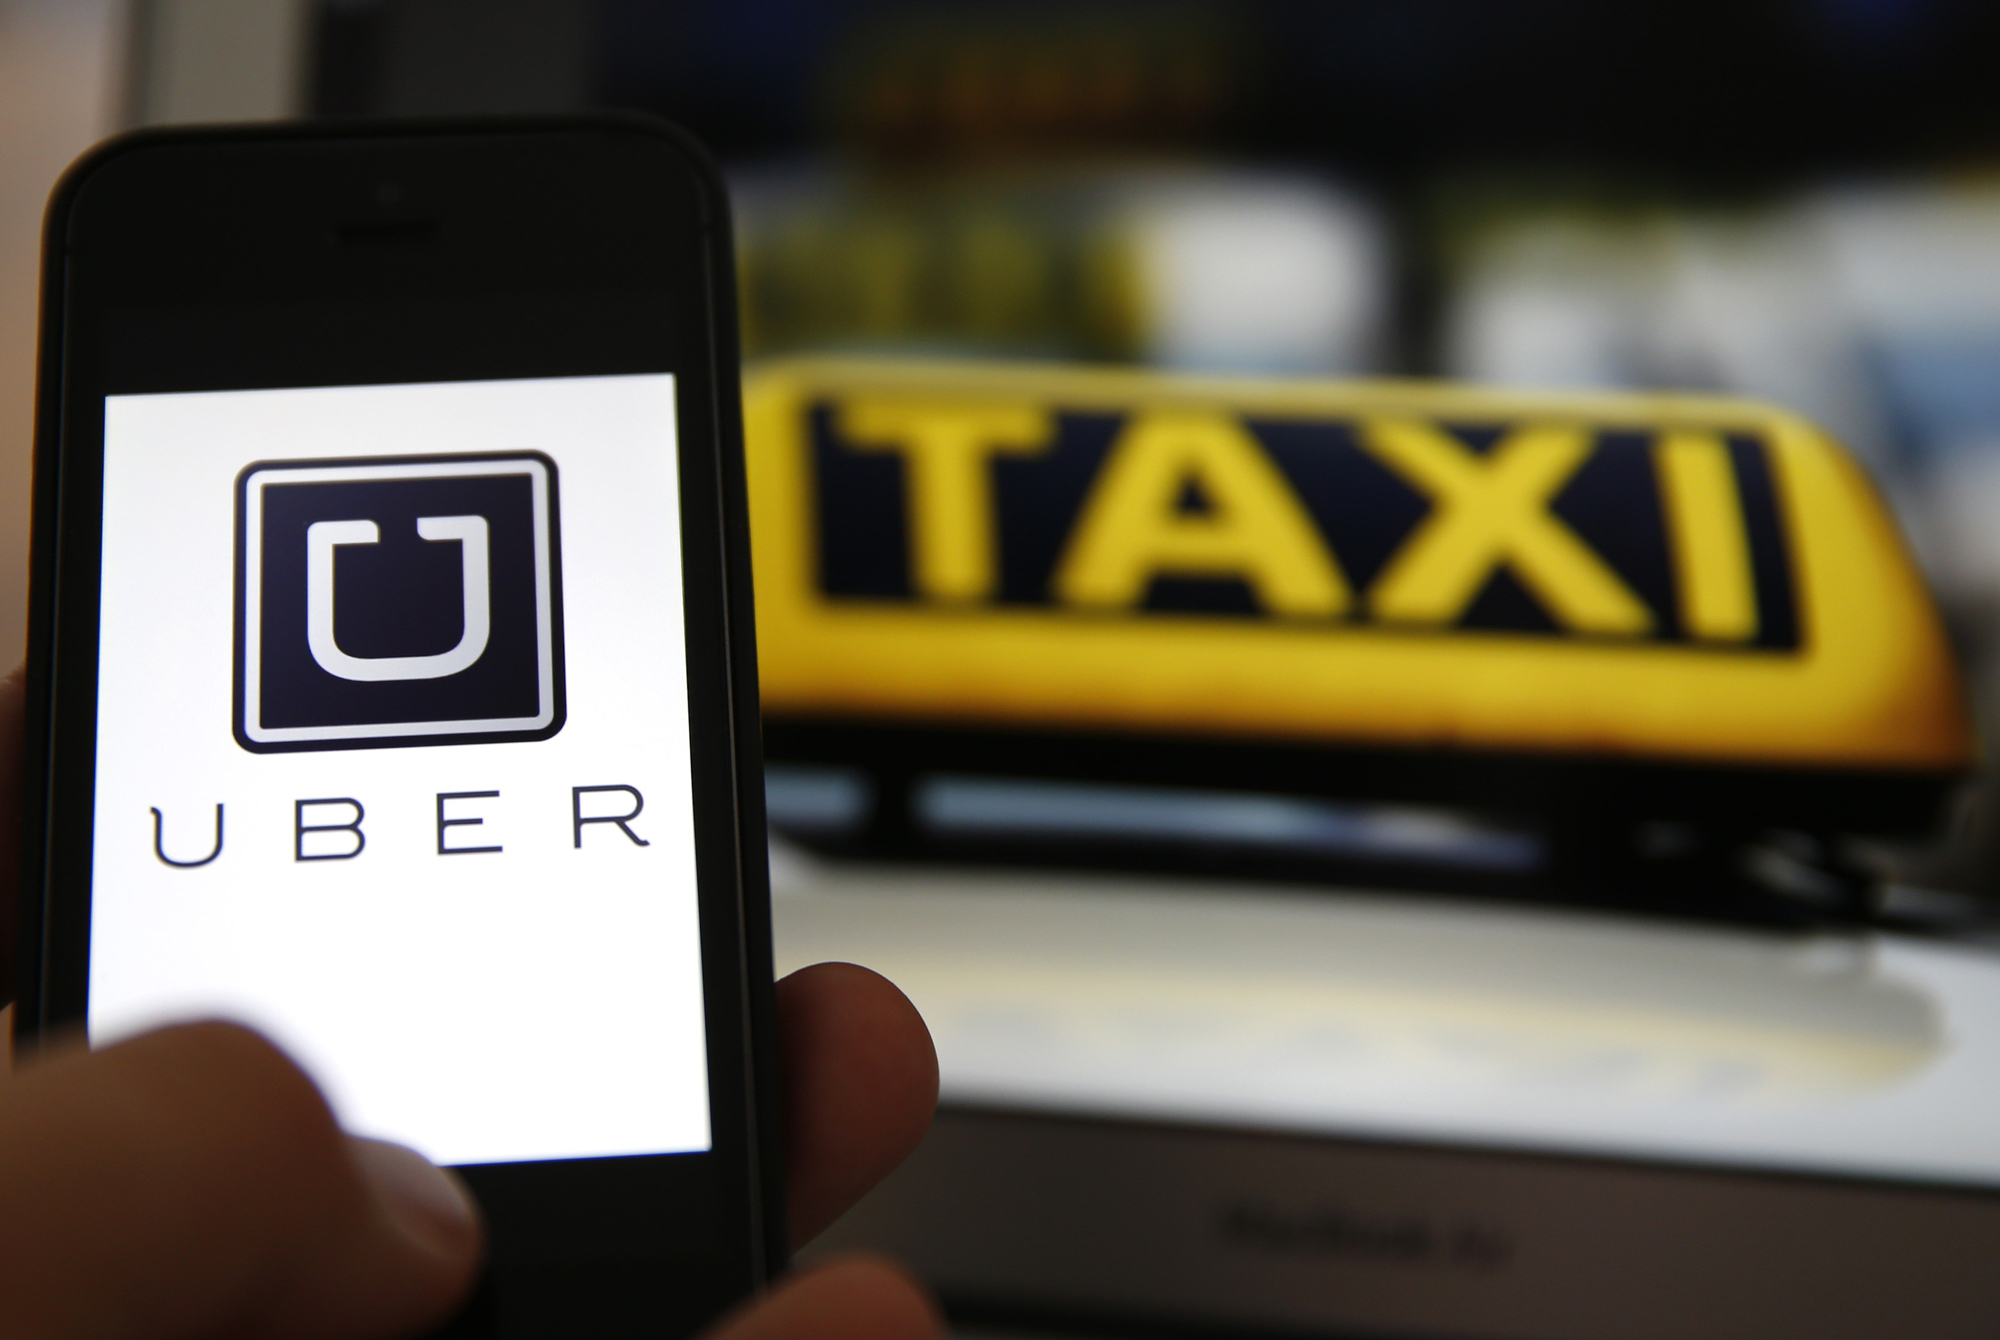 Uber Raises $1.2 billion in China led by Baidu